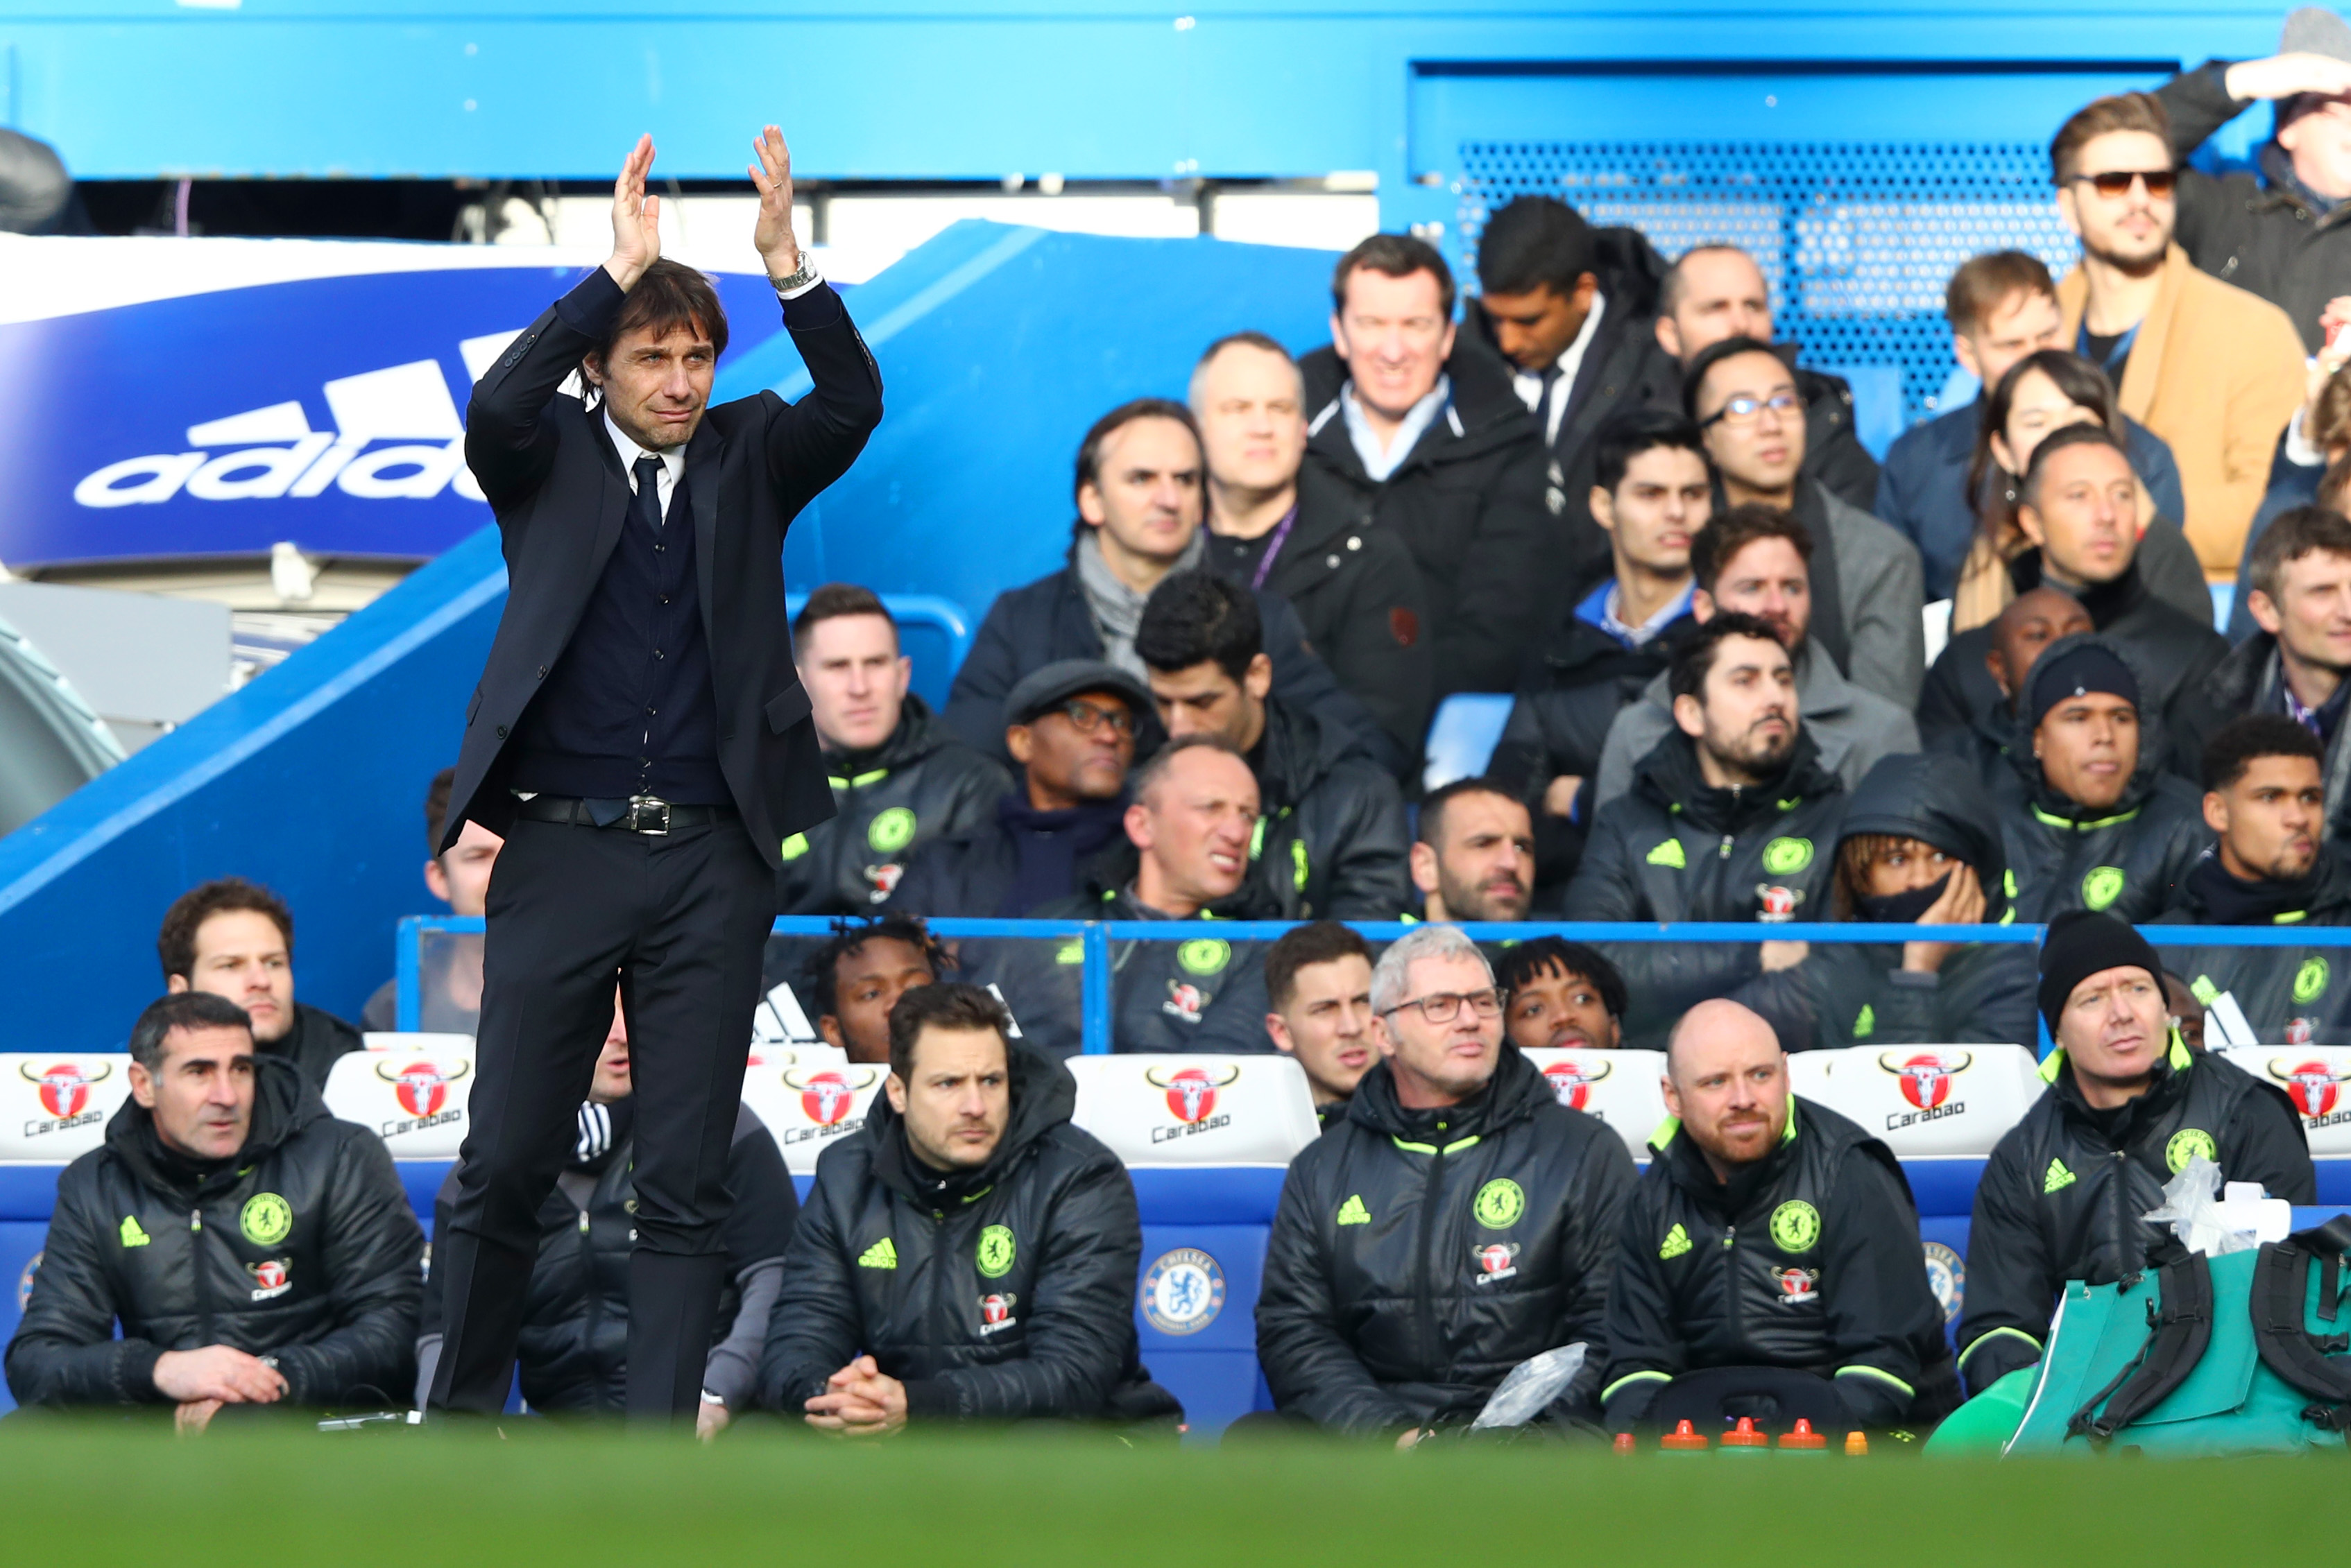 Burnley v Chelsea: Conte's side to maintain title charge with narrow win